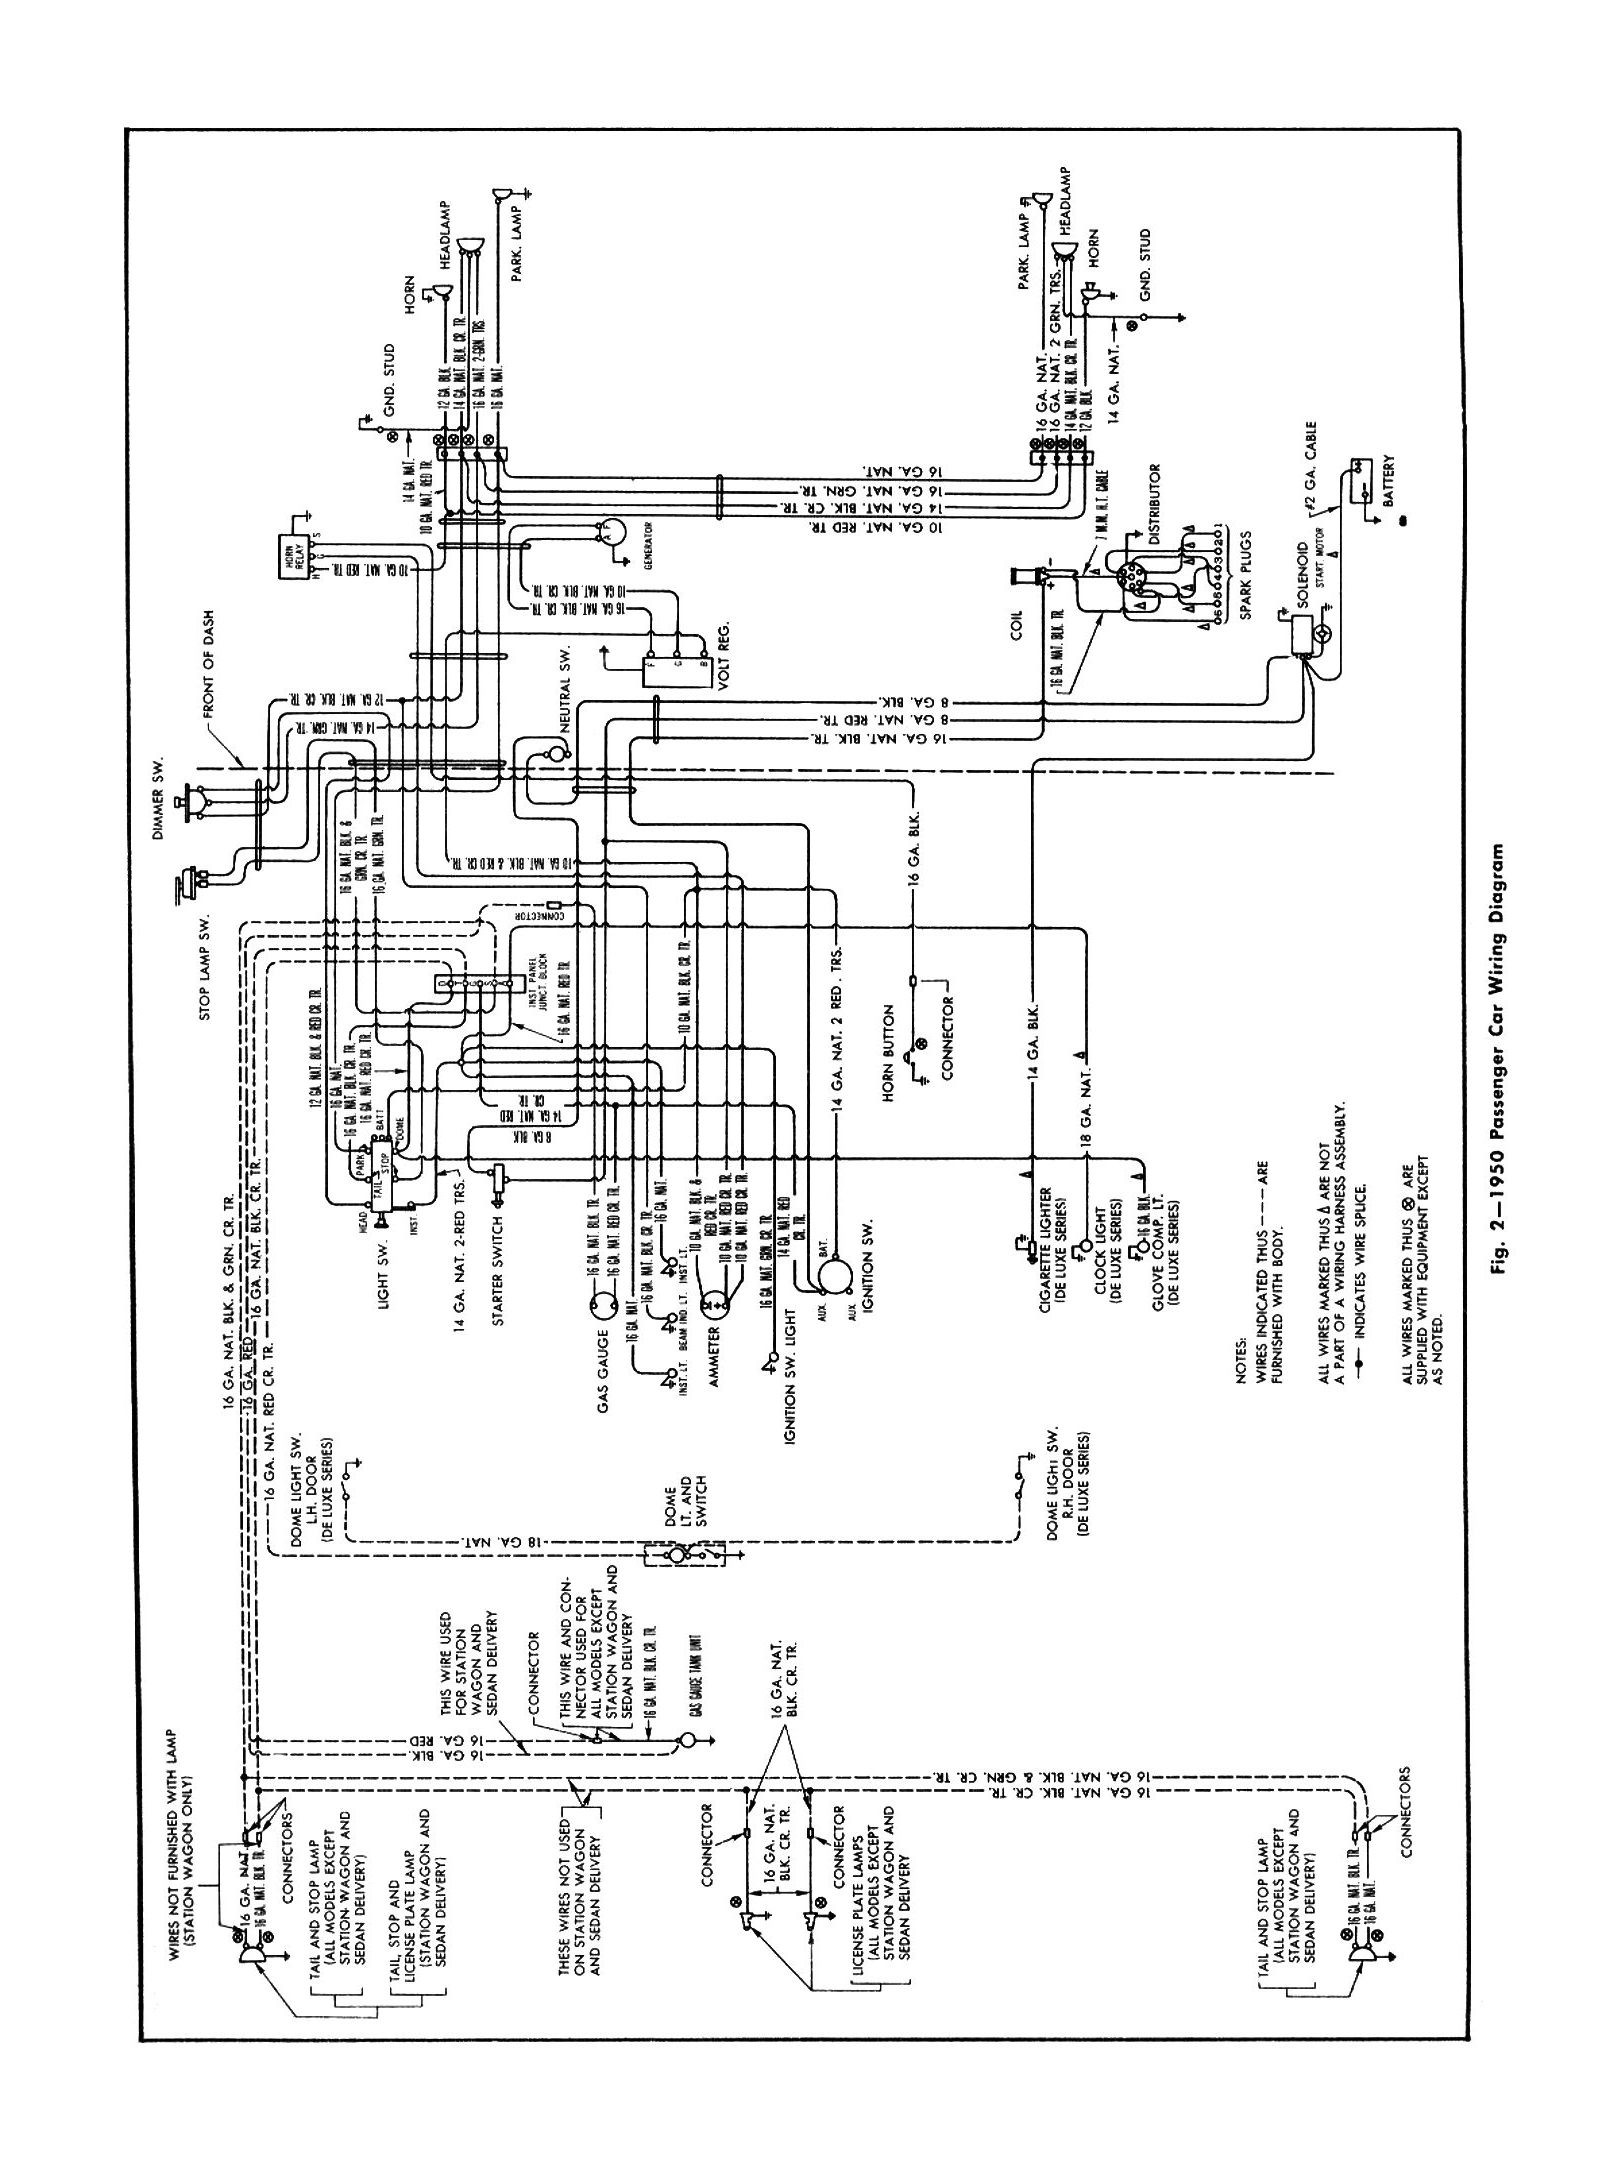 chevy wiring diagrams 52 chevy wiring diagram 52 dodge wiring diagram